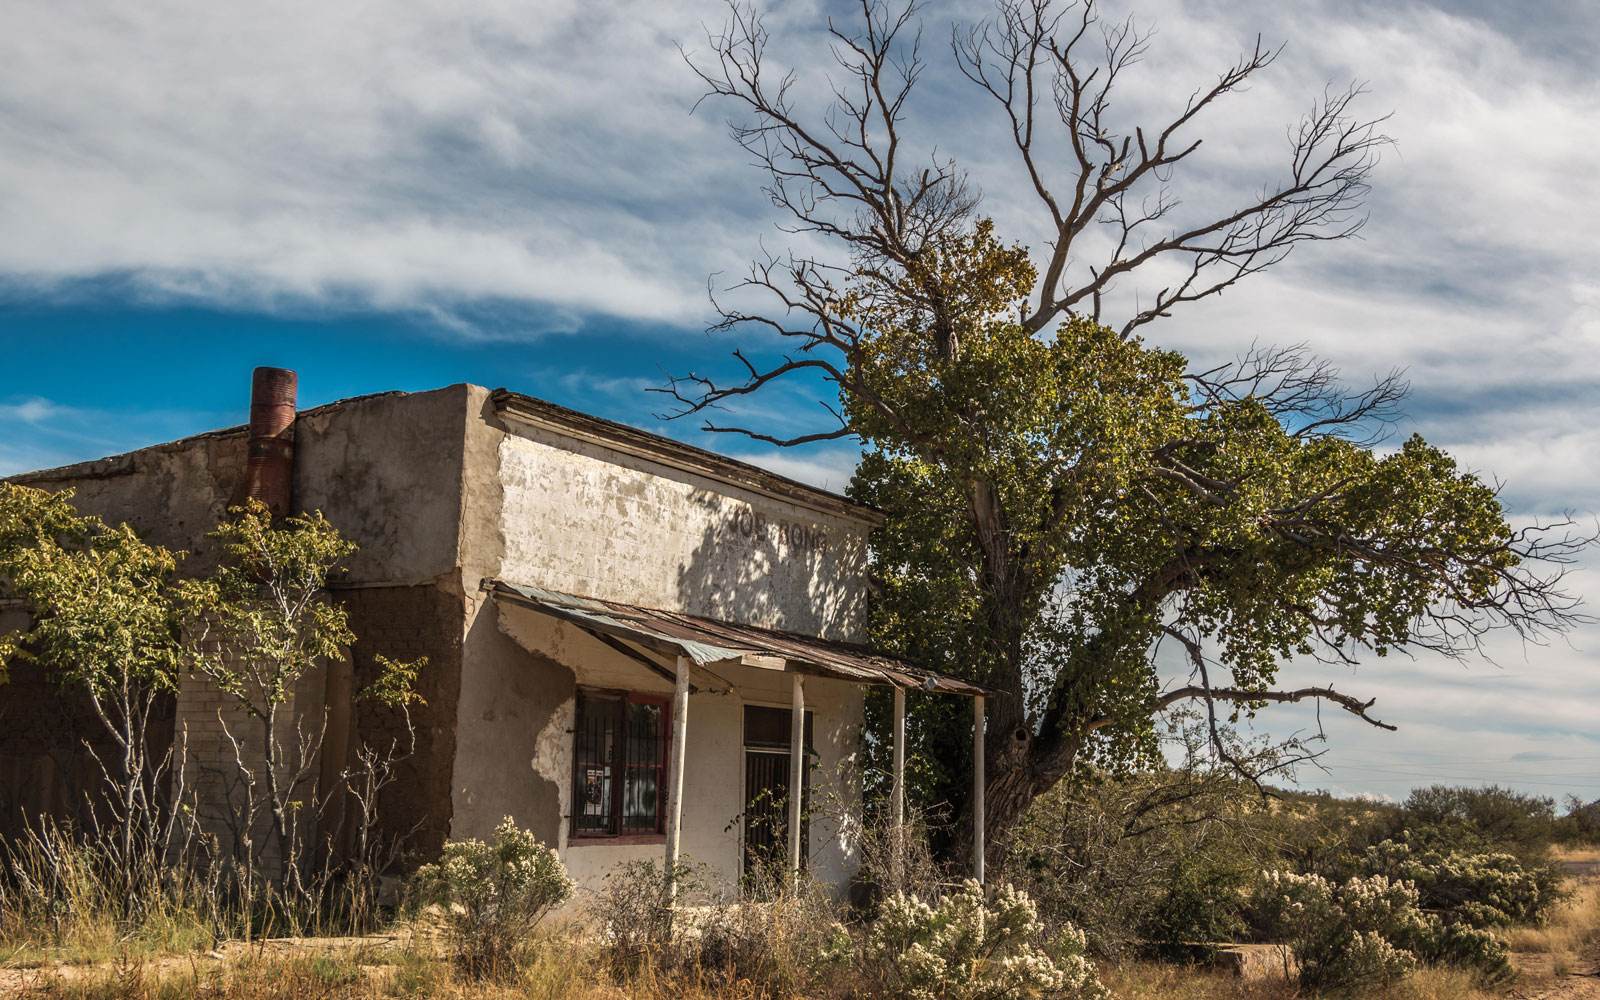 Forum on this topic: 13 Ghost Towns Worth Visiting, 13-ghost-towns-worth-visiting/